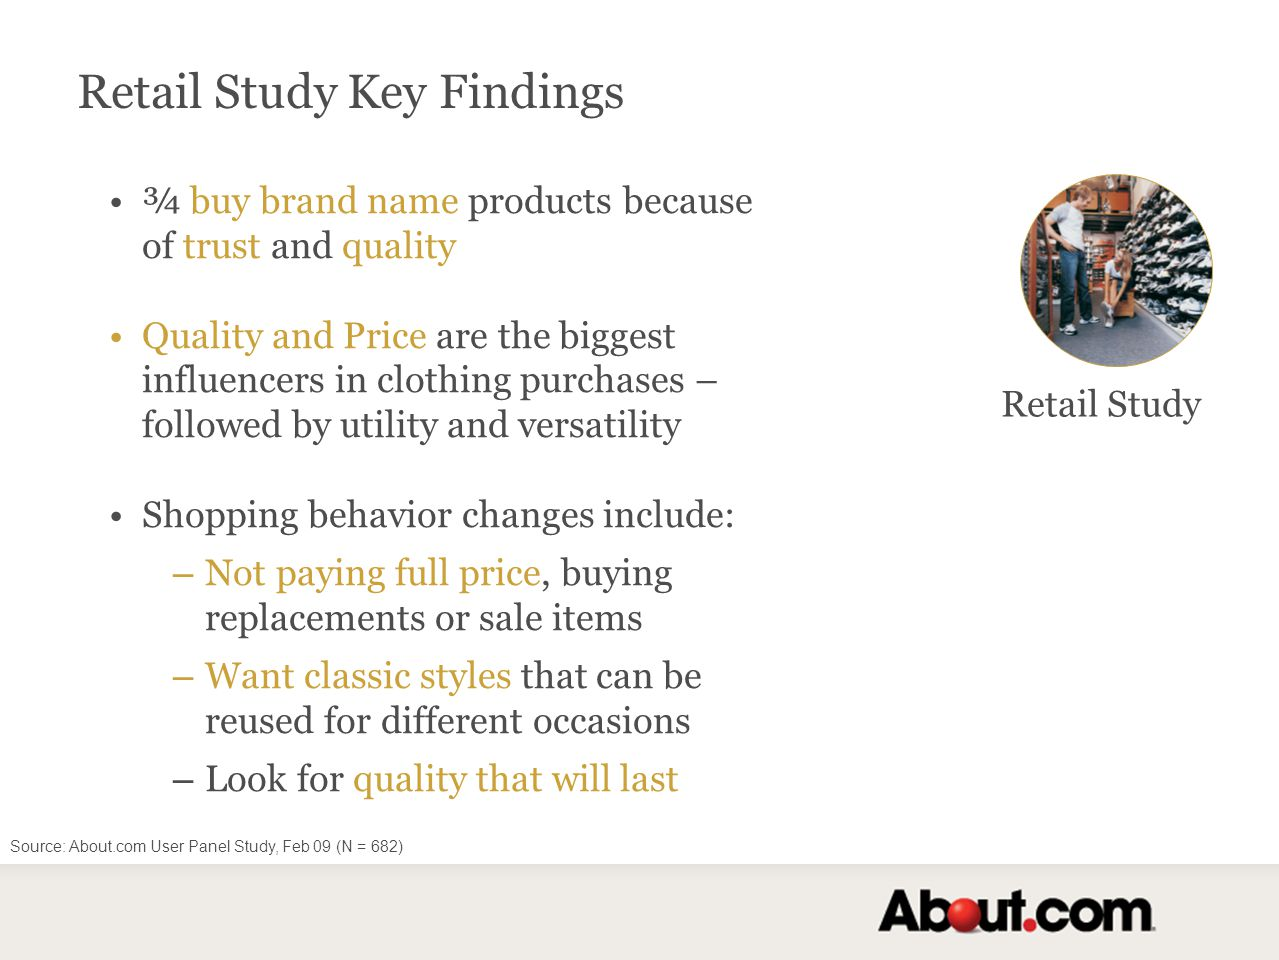 Retail Study Key Findings ¾ buy brand name products because of trust and quality Quality and Price are the biggest influencers in clothing purchases – followed by utility and versatility Shopping behavior changes include: – Not paying full price, buying replacements or sale items – Want classic styles that can be reused for different occasions – Look for quality that will last Retail Study Source: About.com User Panel Study, Feb 09 (N = 682)